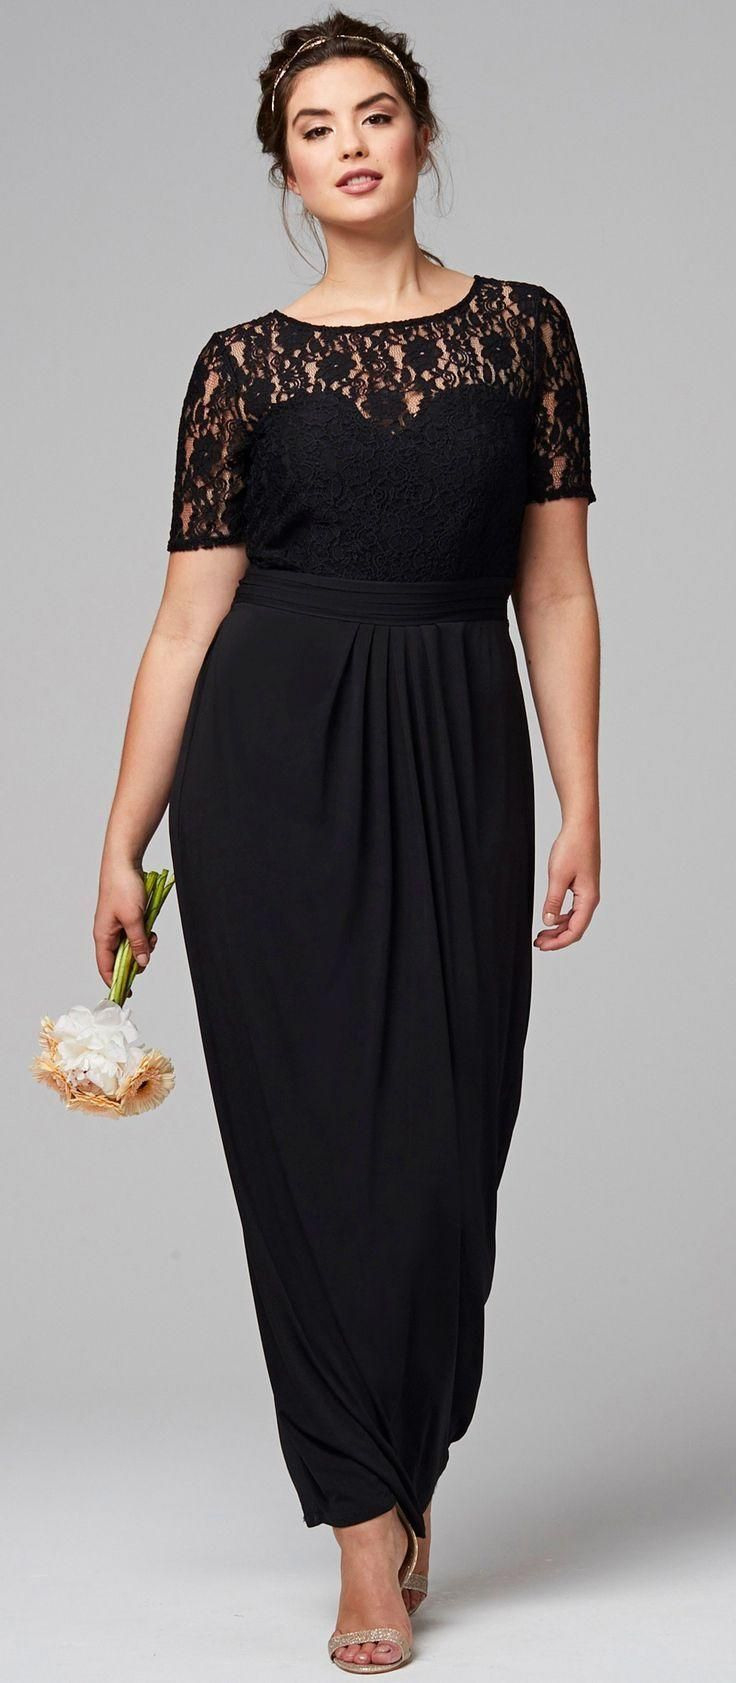 45 Plus Size Wedding Guest Dresses With Sleeves  Kleine